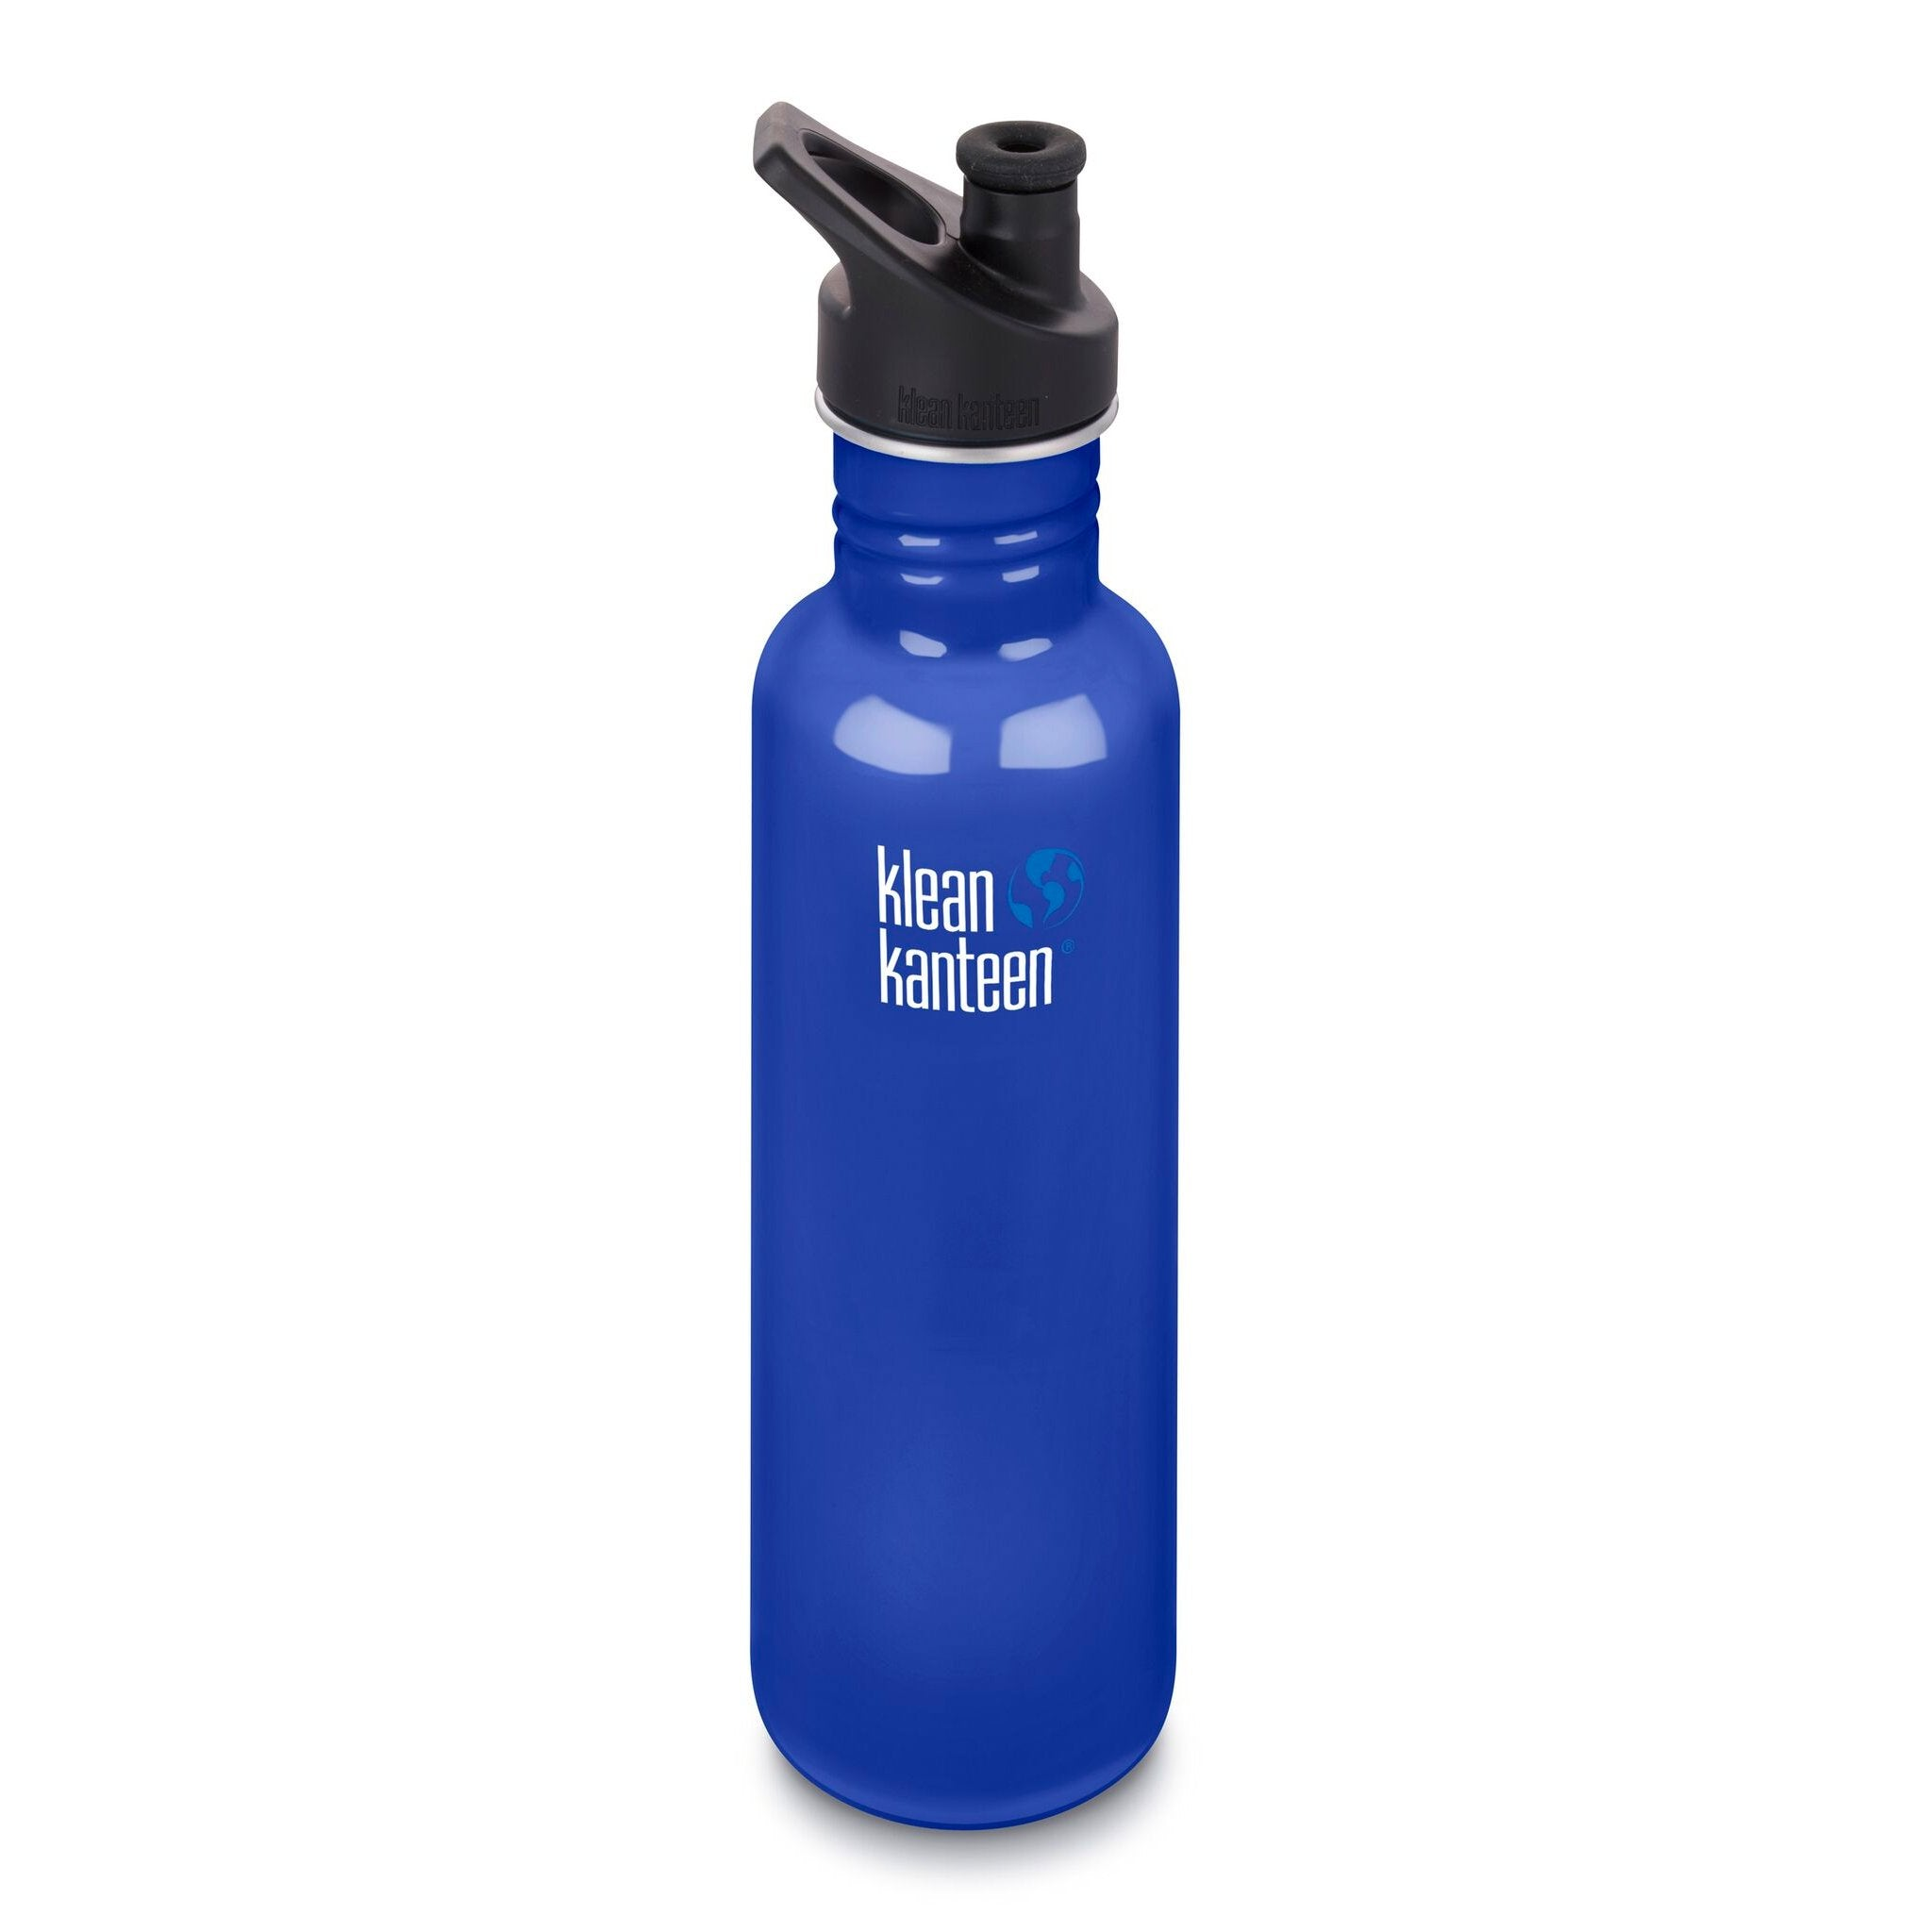 Klean Kanteen Stainless Steel Classic Water Bottle Klean Kanteen Water Bottles 800ml 27oz / Coastal Waters at Little Earth Nest Eco Shop